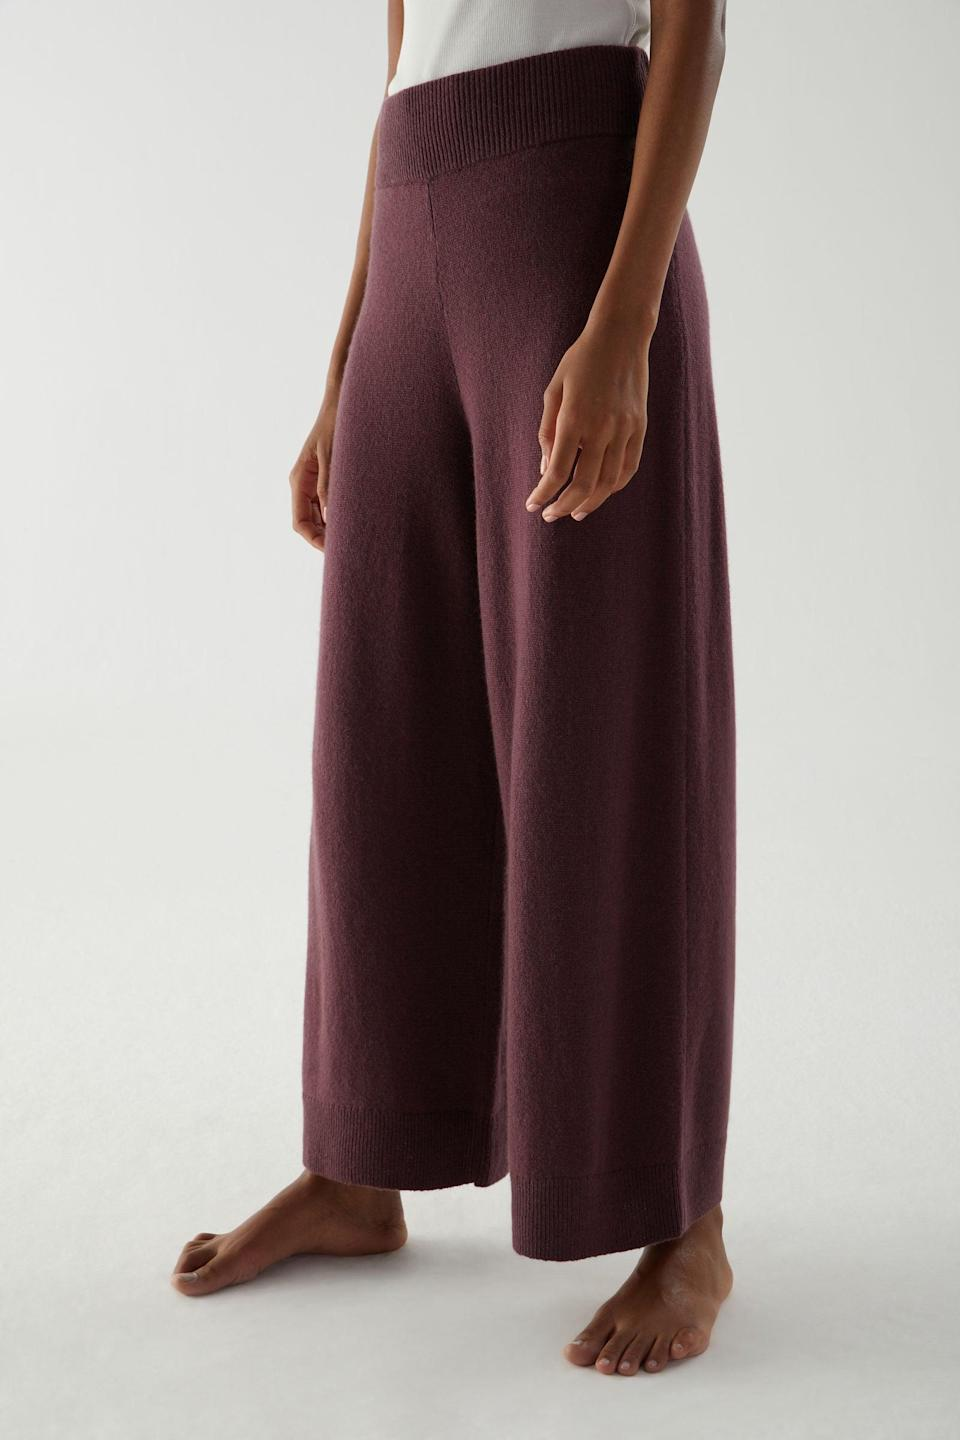 "<h2>COS Recycled Cashmere Wide-Leg Pant</h2><br>Leave it to the effortlessly understated COS to create a cashmere sweatpant that's too beautifully tailored to keep cooped up at home. These wine-colored wide-leg knit trousers are definitely appropriate for public consumption — and they're made from 70% recycled cashmere. (Even better, COS is a member of the <a href=""https://thegoodcashmerestandard.org/"" rel=""nofollow noopener"" target=""_blank"" data-ylk=""slk:Good Cashmere Standard"" class=""link rapid-noclick-resp"">Good Cashmere Standard</a>, a independent industry watchdog developed by the Aid by Trade Foundation that aims to improve the welfare of cashmere goats and the herders that raise them.)<br><br><strong>COS</strong> Recycled Cashmere Wide-Leg Pants, $, available at <a href=""https://go.skimresources.com/?id=30283X879131&url=https%3A%2F%2Fwww.cosstores.com%2Fen_usd%2Fwomen%2Fwomenswear%2Ftrousers%2Fproduct.recycled-cashmere-wide-leg-pants-red.0919262003.html"" rel=""nofollow noopener"" target=""_blank"" data-ylk=""slk:COS"" class=""link rapid-noclick-resp"">COS</a>"